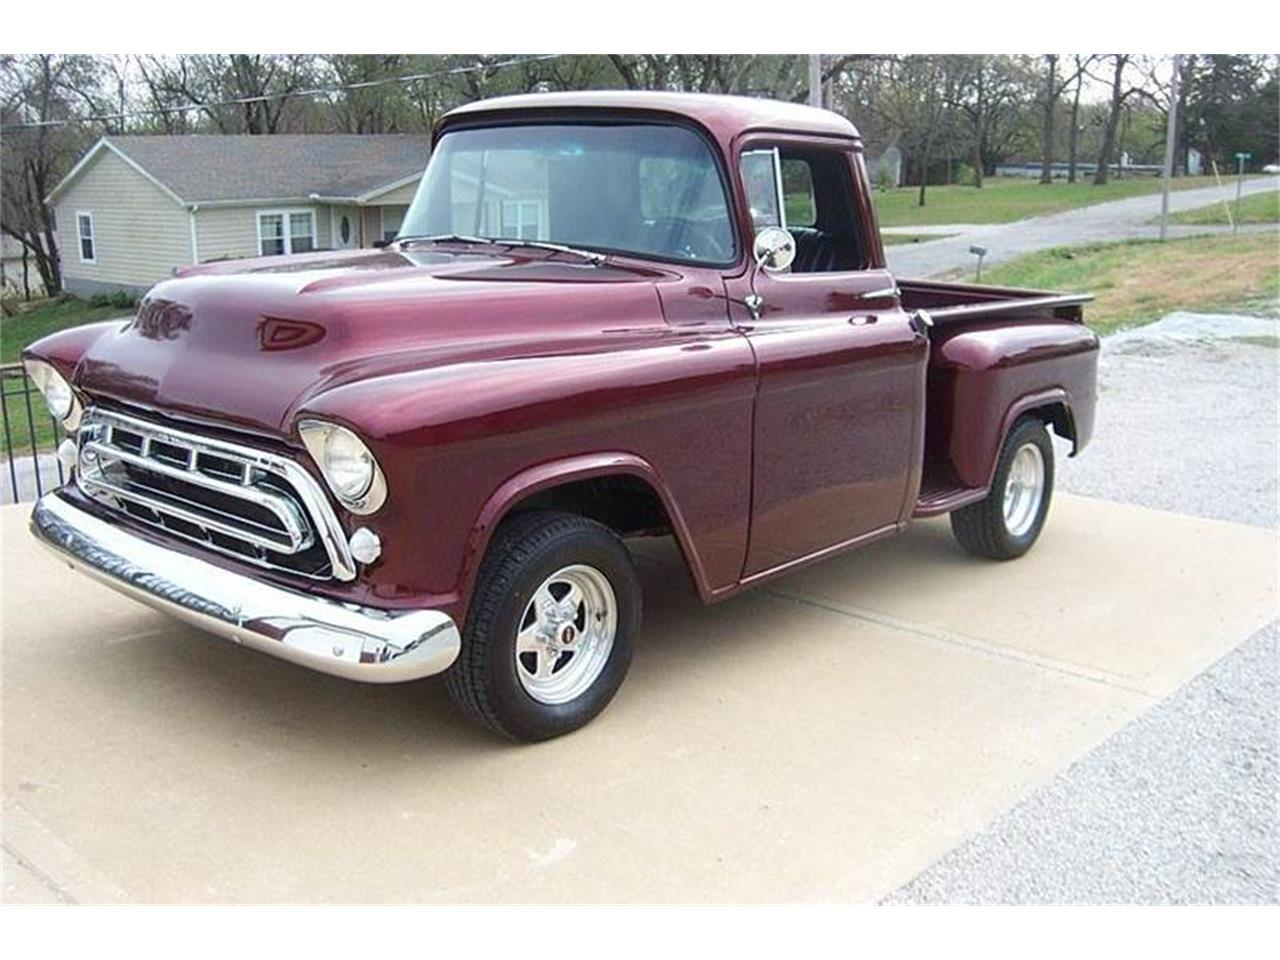 1957 Chevrolet Apache For Sale Cc 921934 Chevy Truck Large Picture Of 57 Jrda